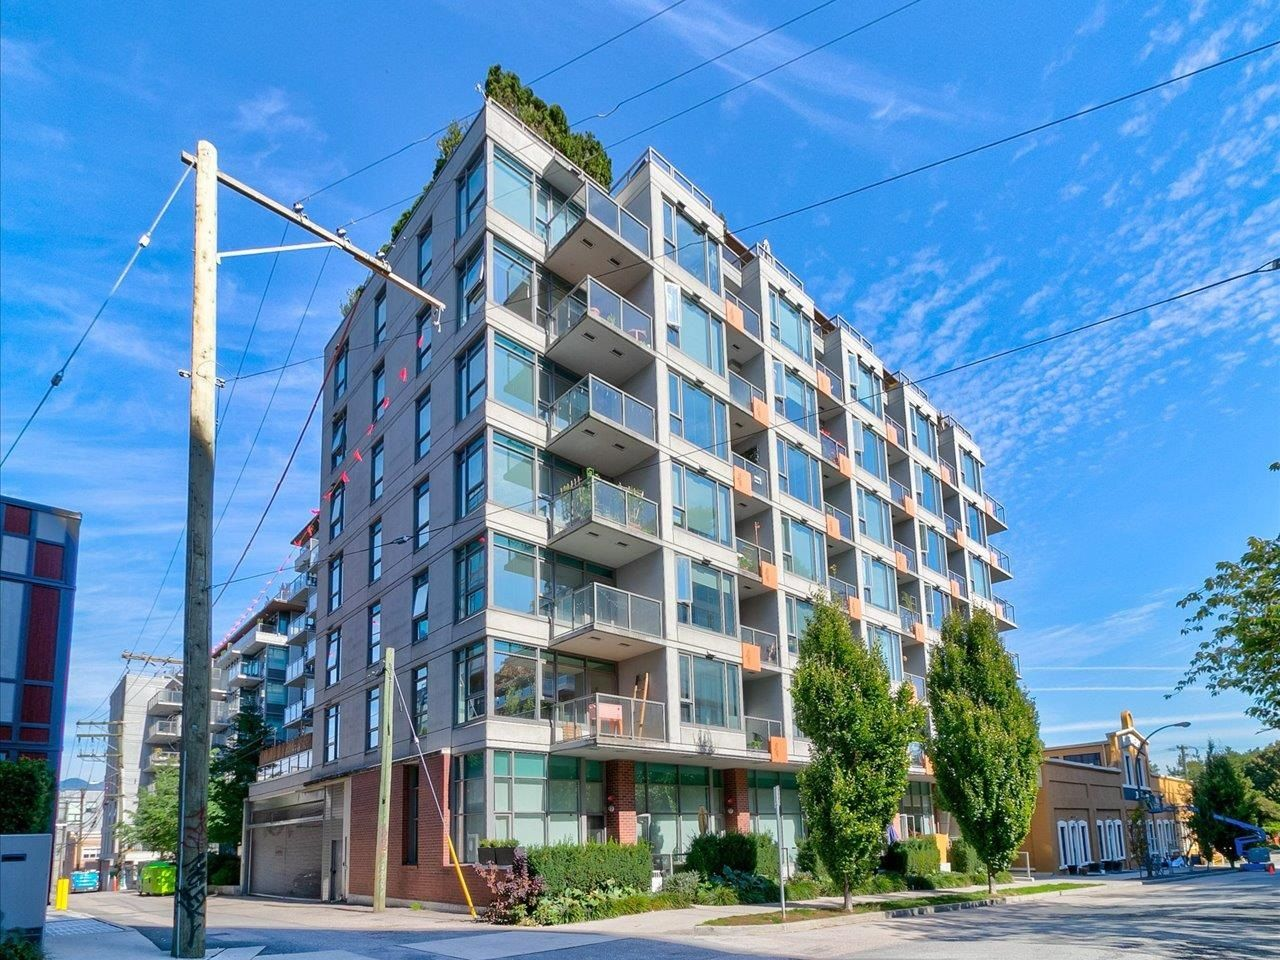 """Main Photo: 801 251 E 7TH Avenue in Vancouver: Mount Pleasant VE Condo for sale in """"District"""" (Vancouver East)  : MLS®# R2621042"""